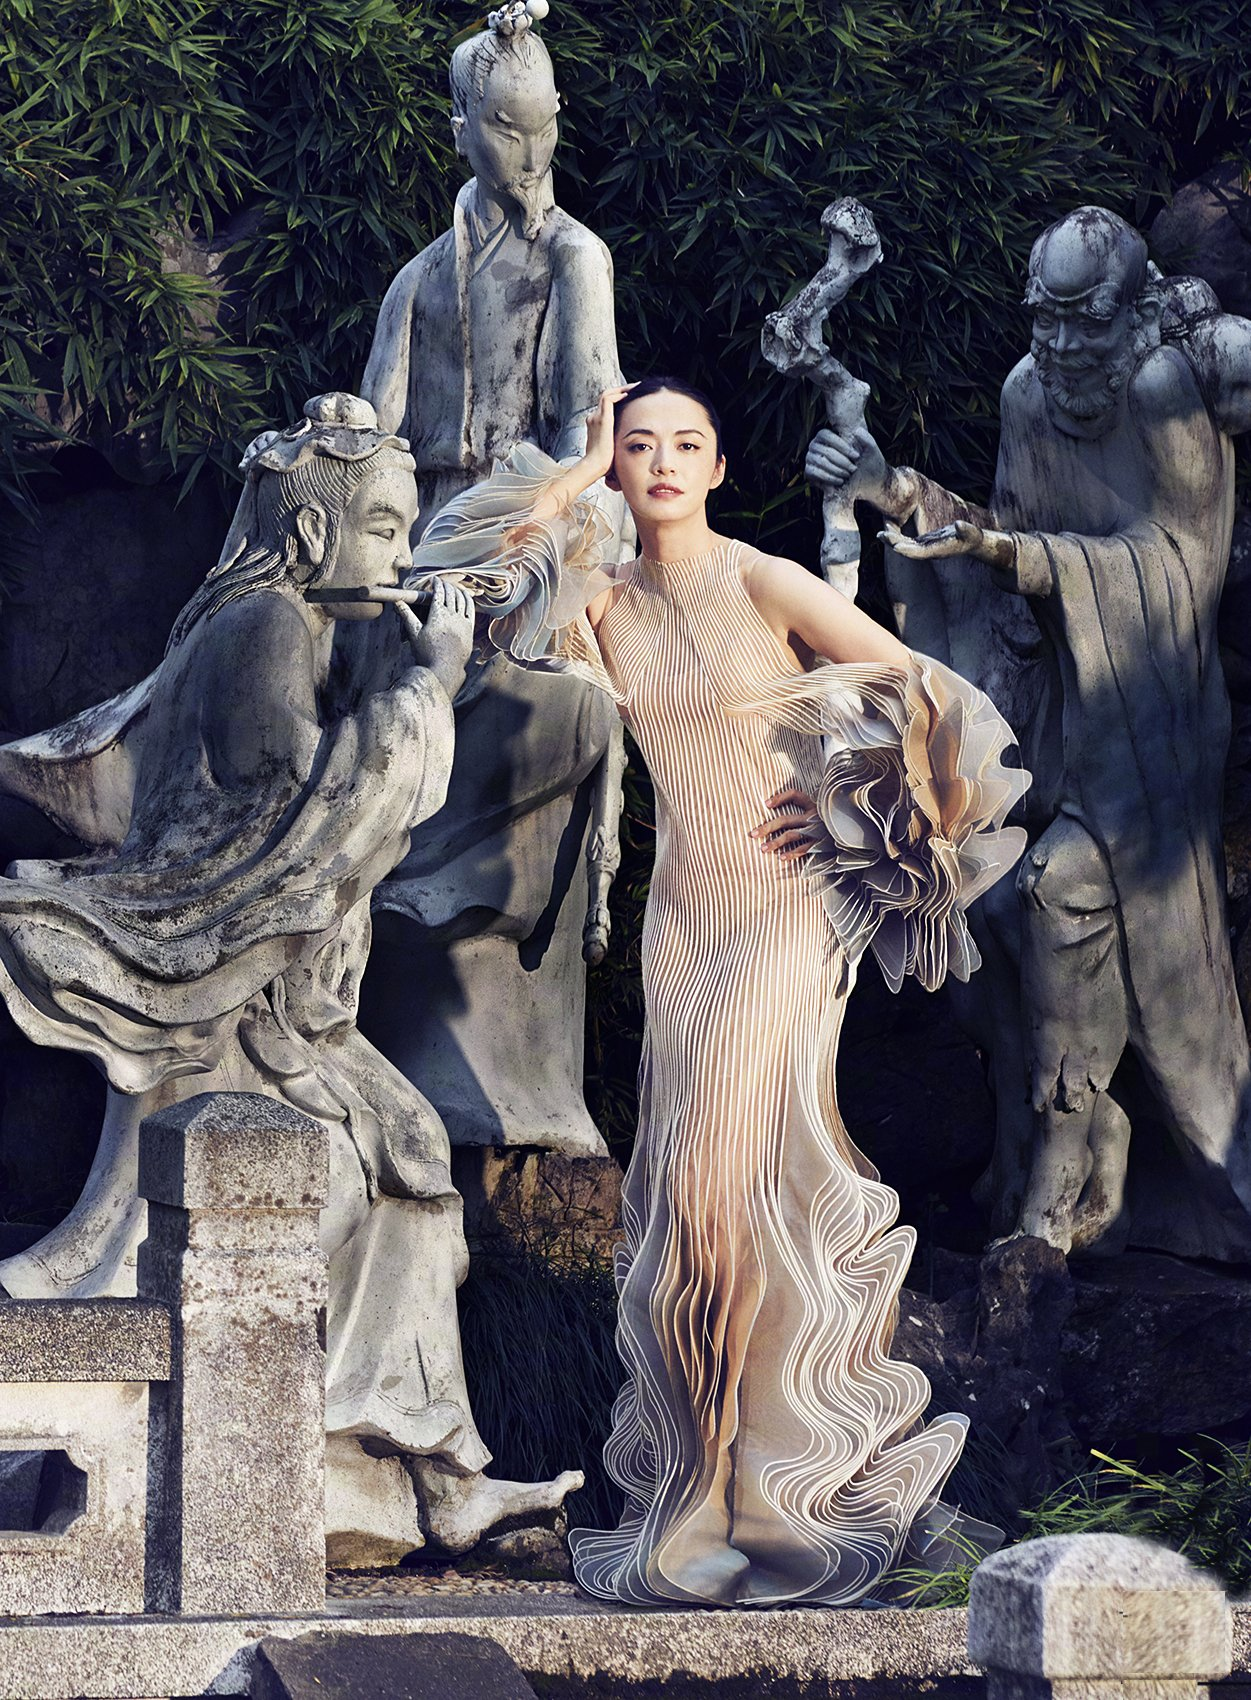 IVH China Harpers Bazaar